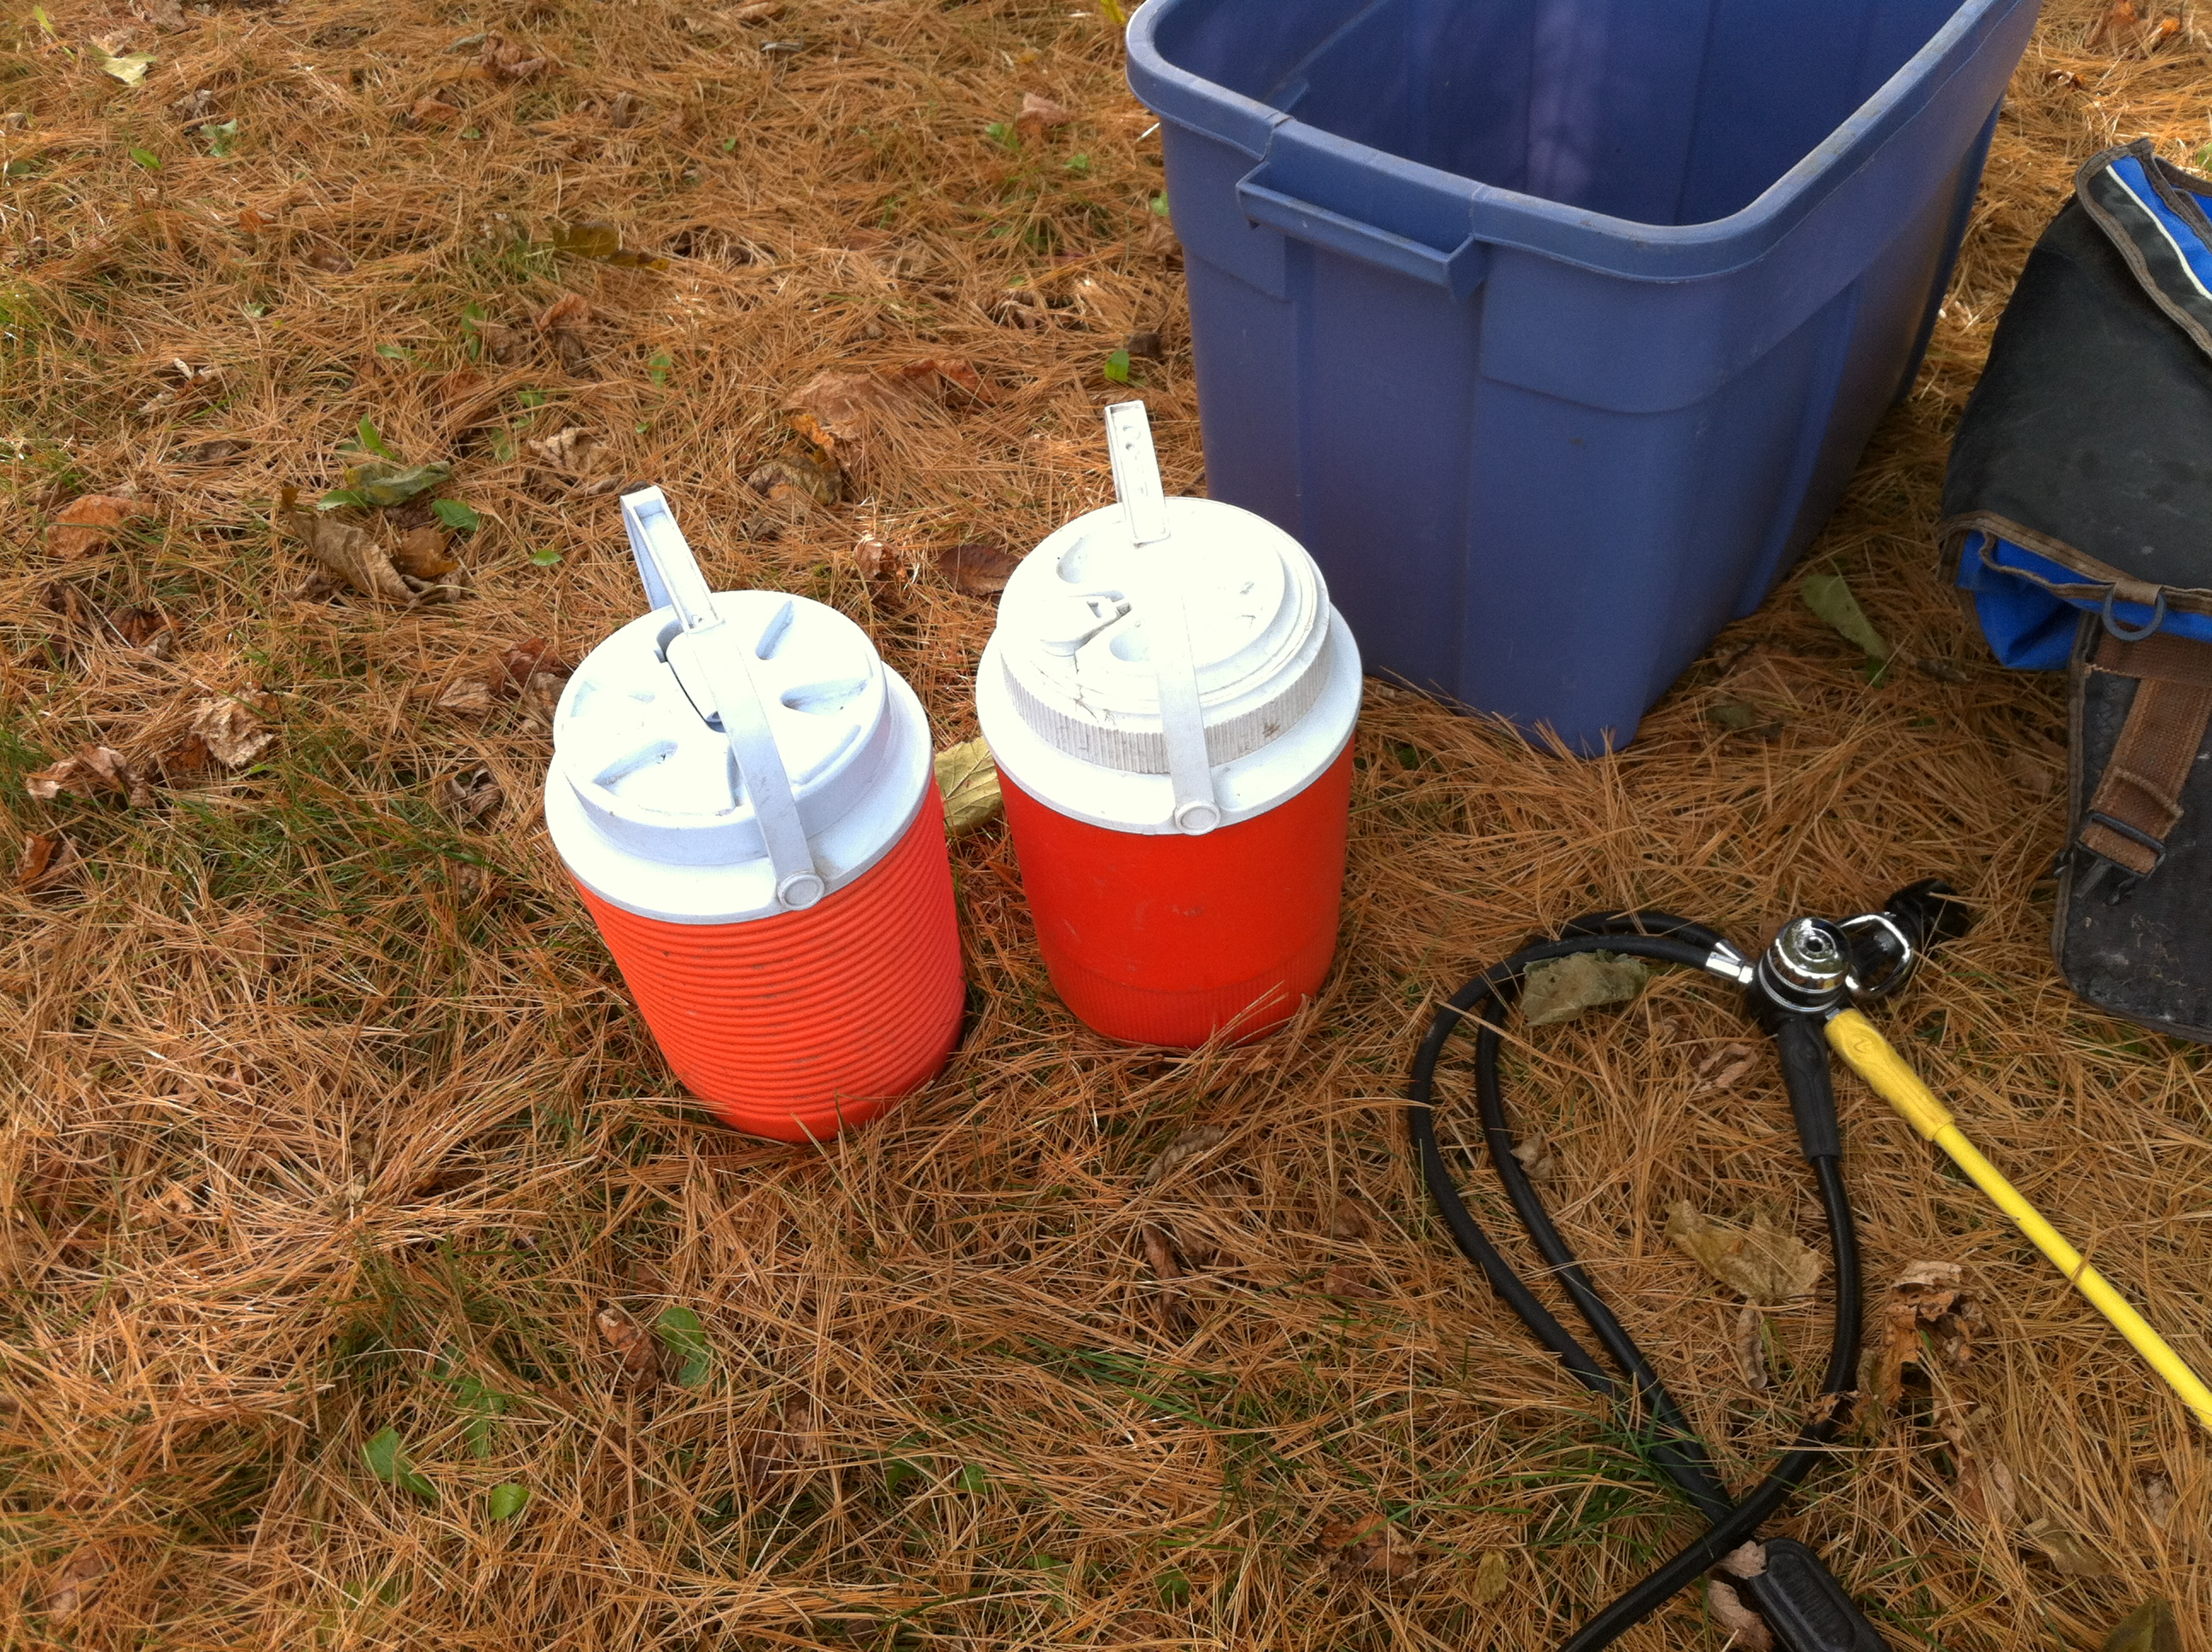 Priming Water Jugs